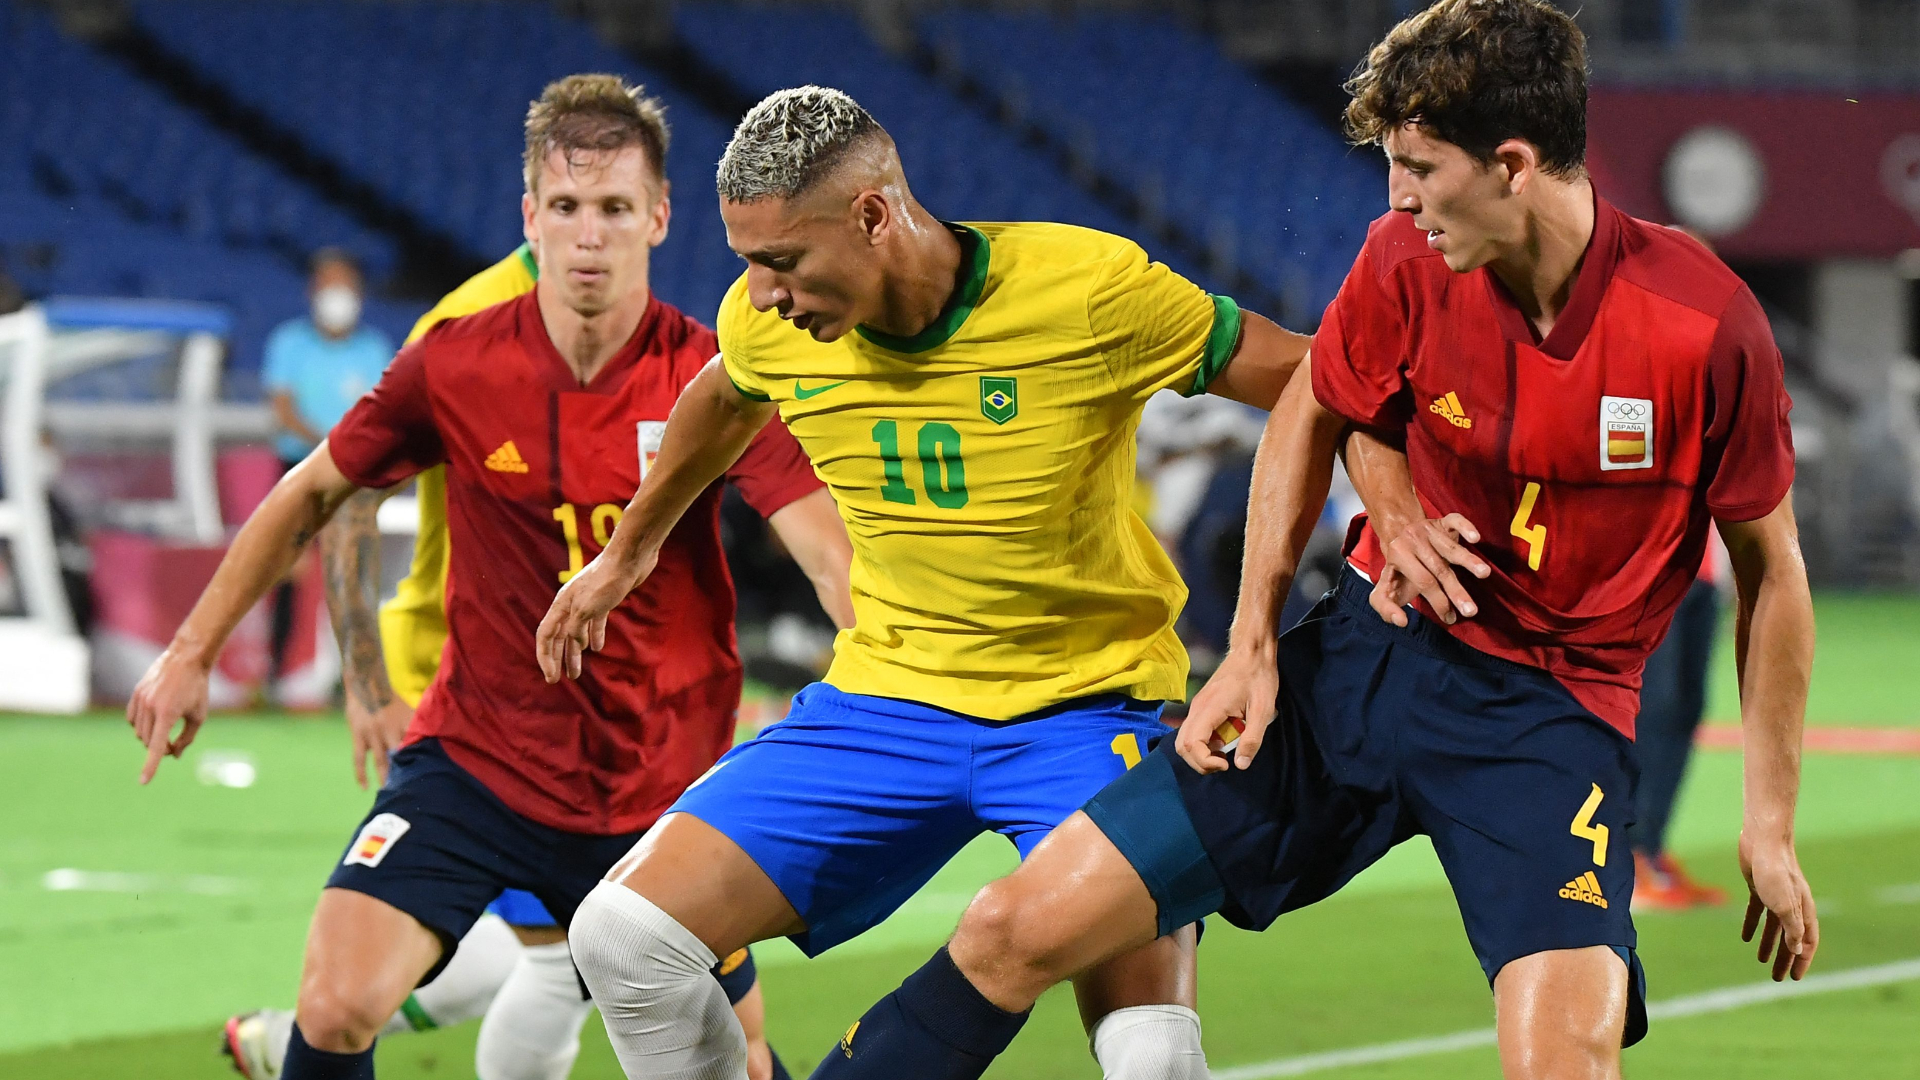 Tokyo 2020: Brazil beat Spain to become fifth team to win back-to-back gold medals in Olympics men's football